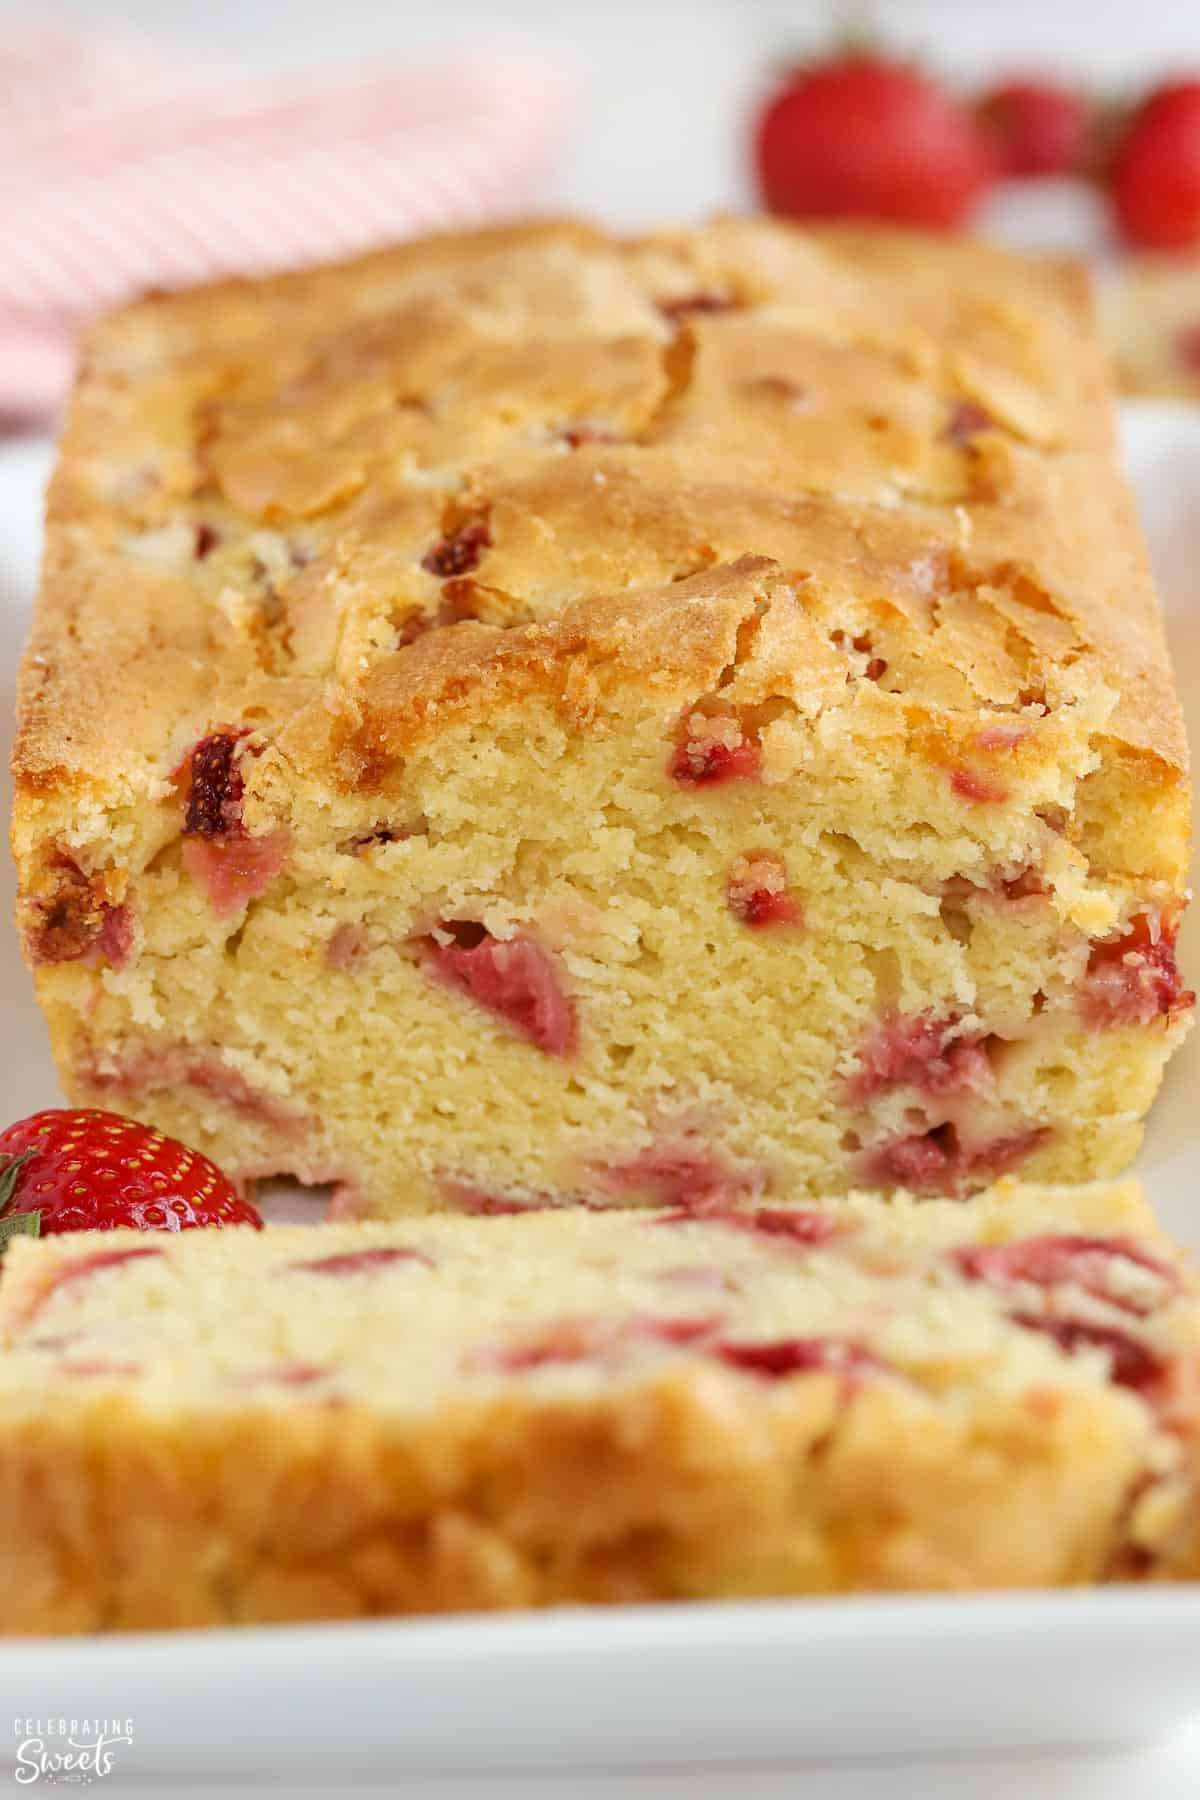 Loaf of strawberry bread on a white plate garnished with strawberries.